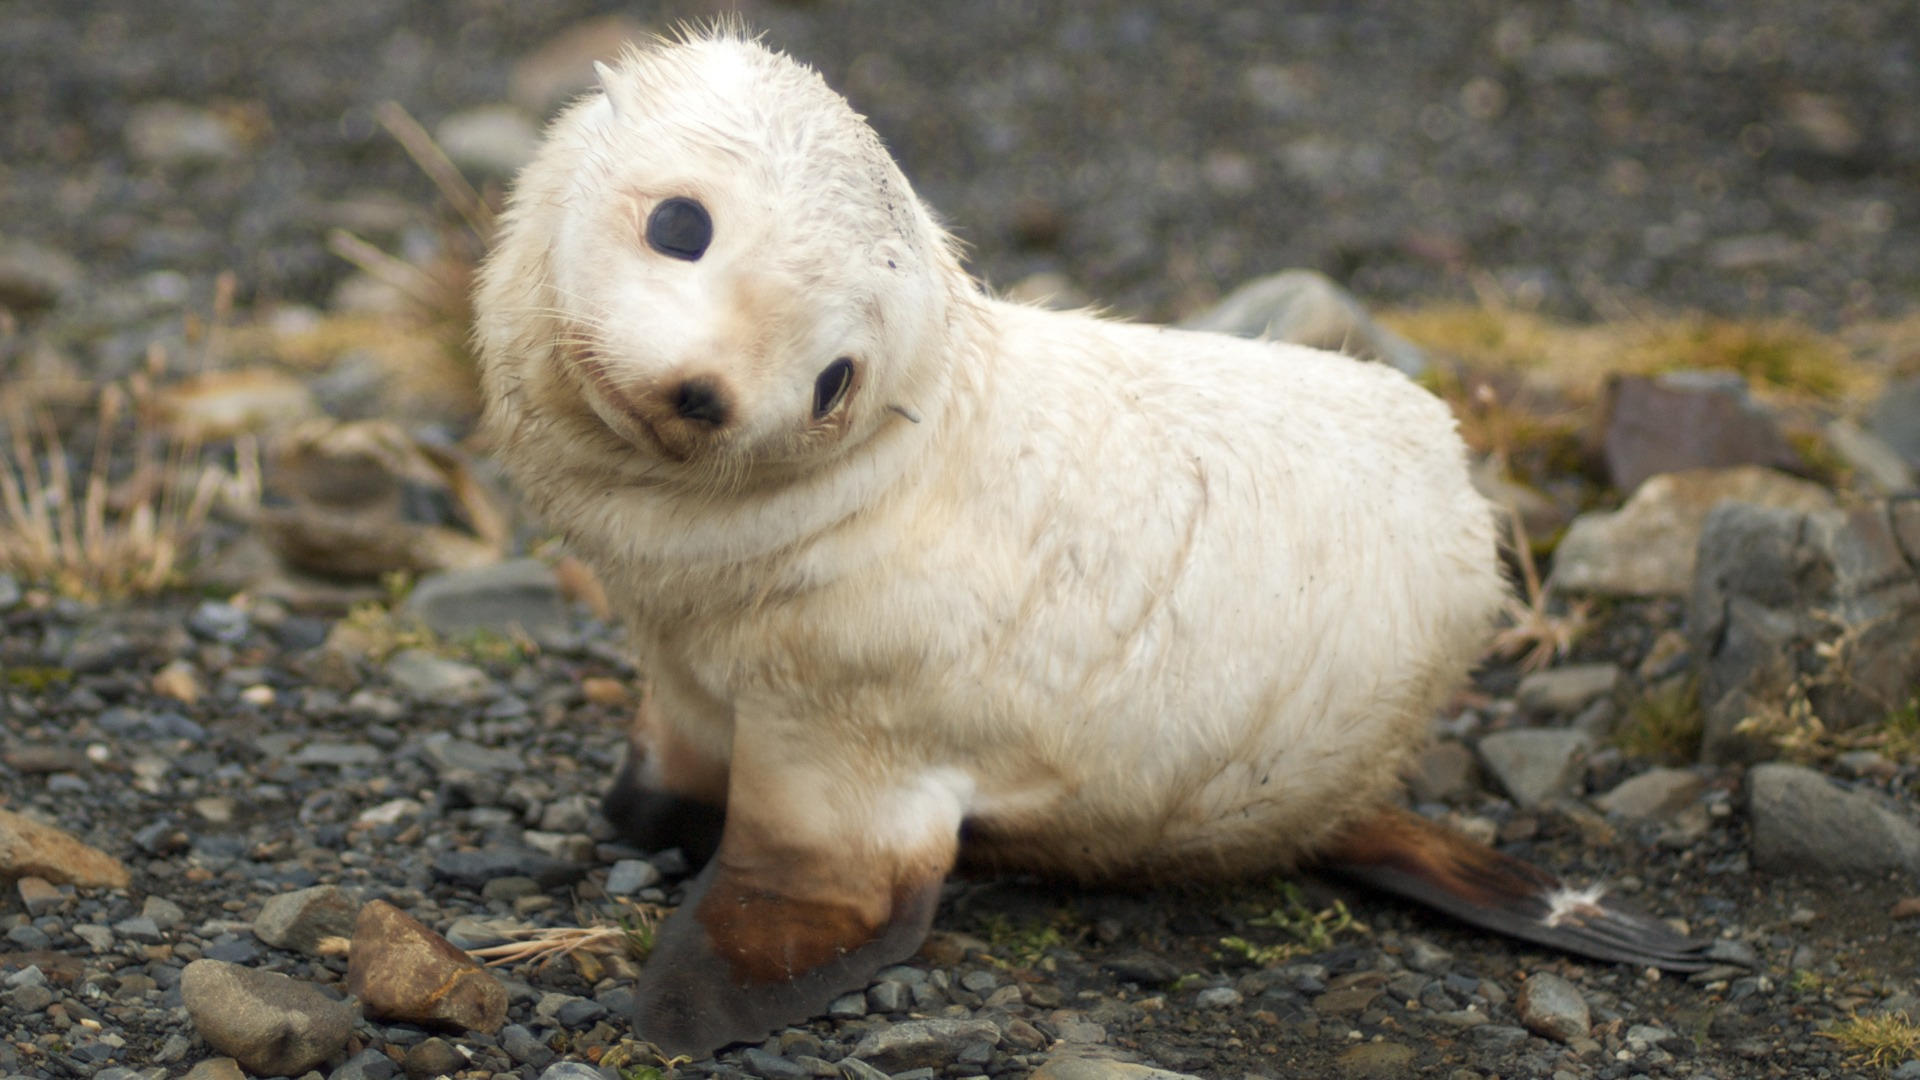 Baby Seal Wallpaper Seals Animals Wallpapers In Jpg Format For Free Download